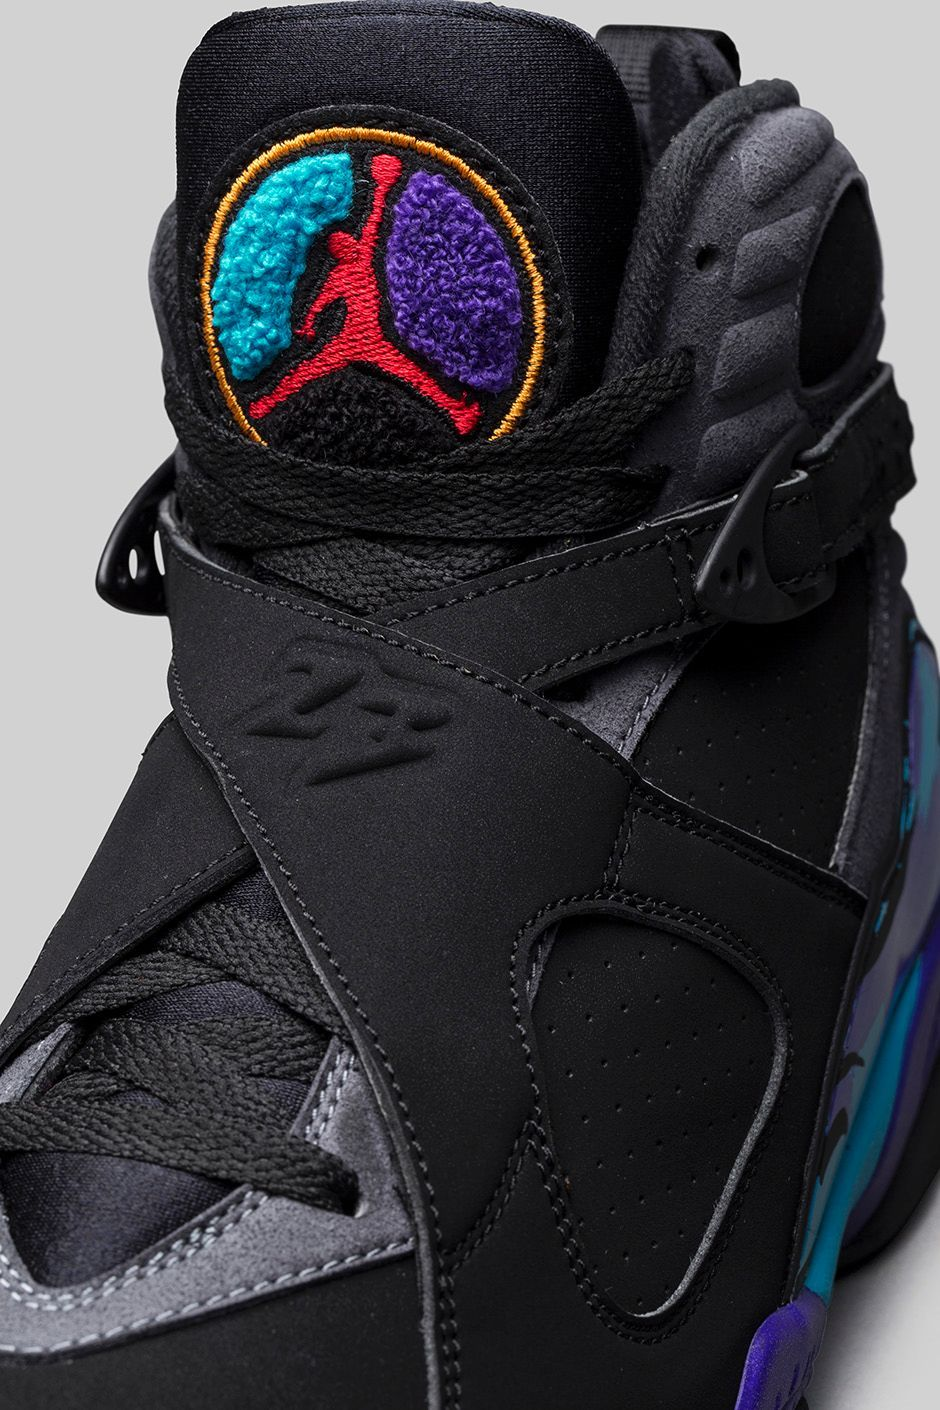 Air Jordan 8 Aqua Colorway: Black/Bright Concord-Aqua Tone Release Date:  November 2015